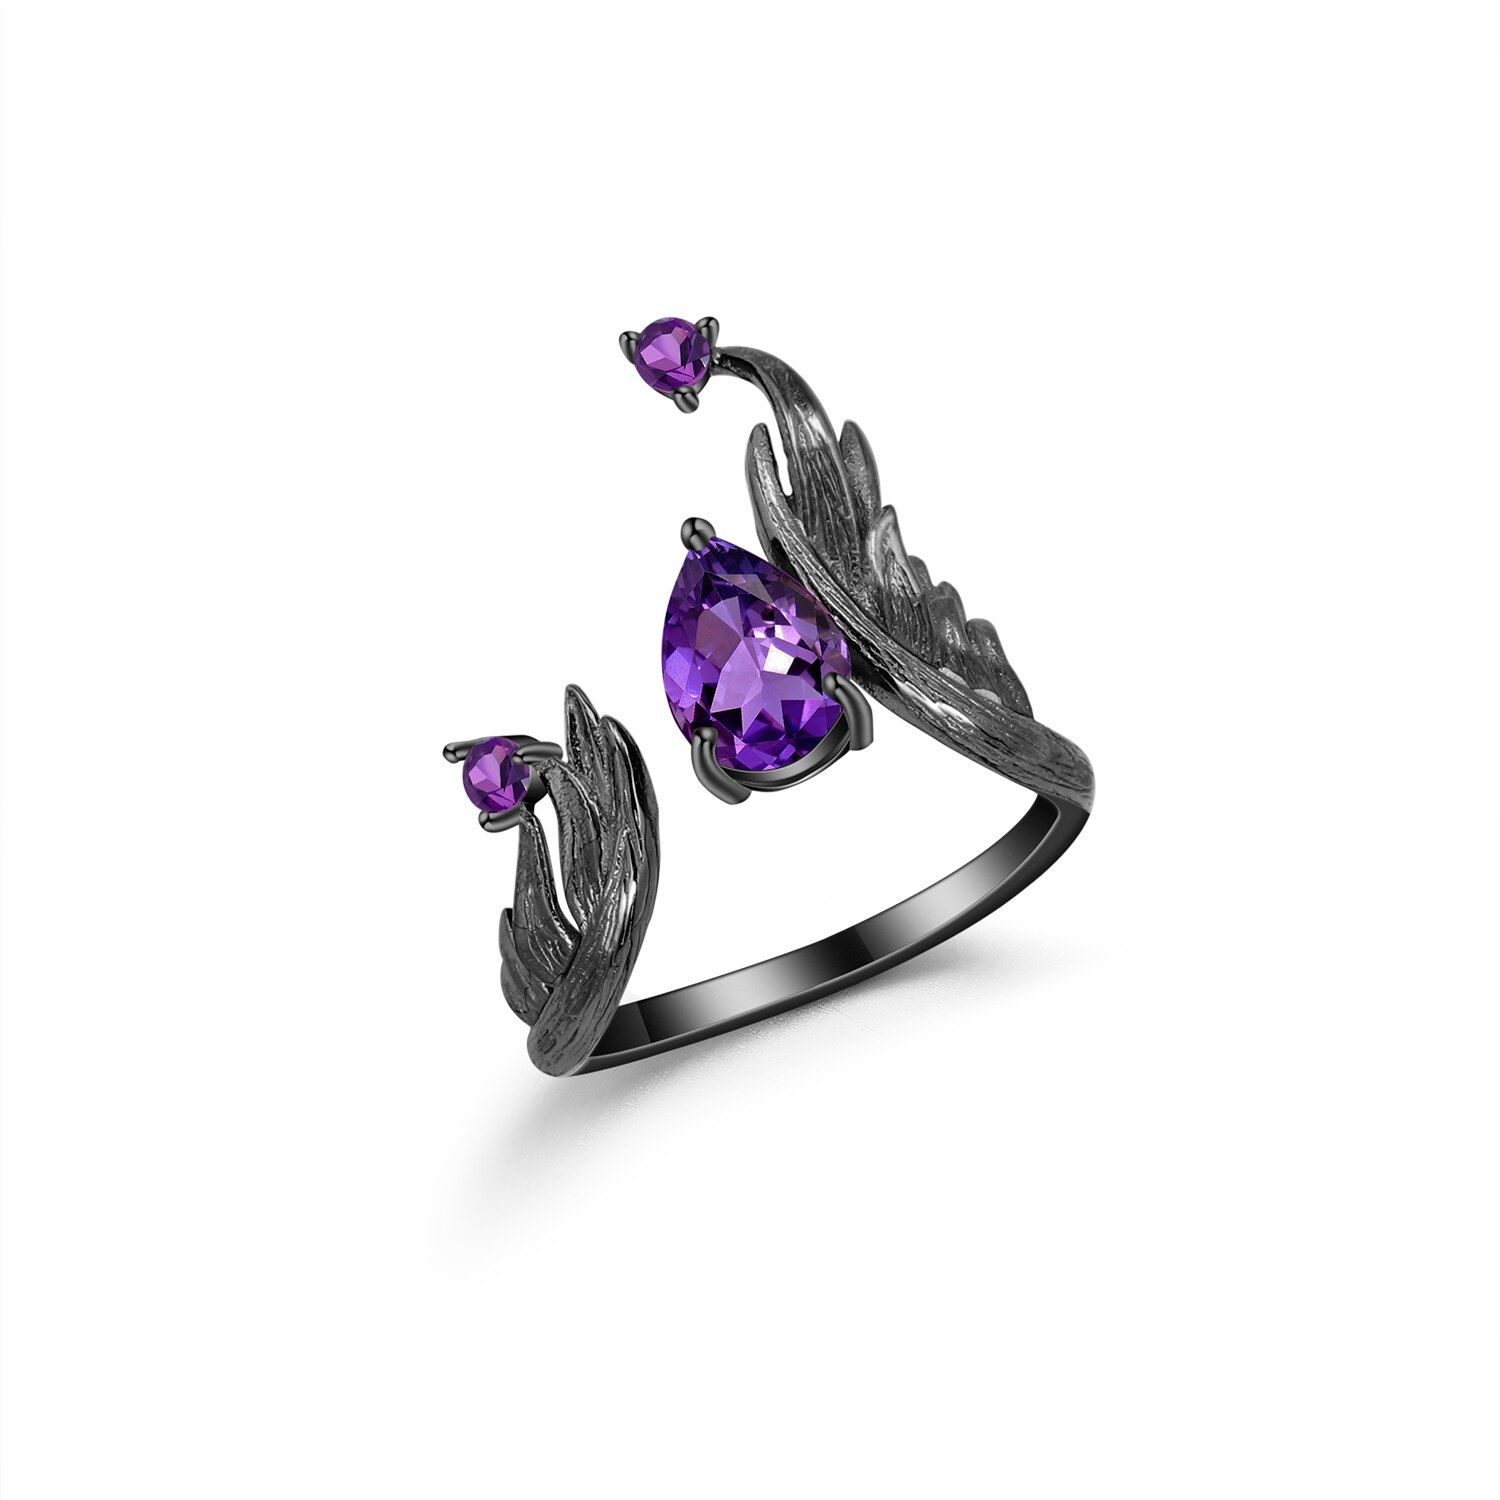 Photo of GEM'S BALLET 1.43Ct Natural Amethyst Gemstone Rings 925 Sterling Silver Handmade Adjustable Angel's Wing Ring for Women Bijoux – Resizable-02 / United States / Amethyst